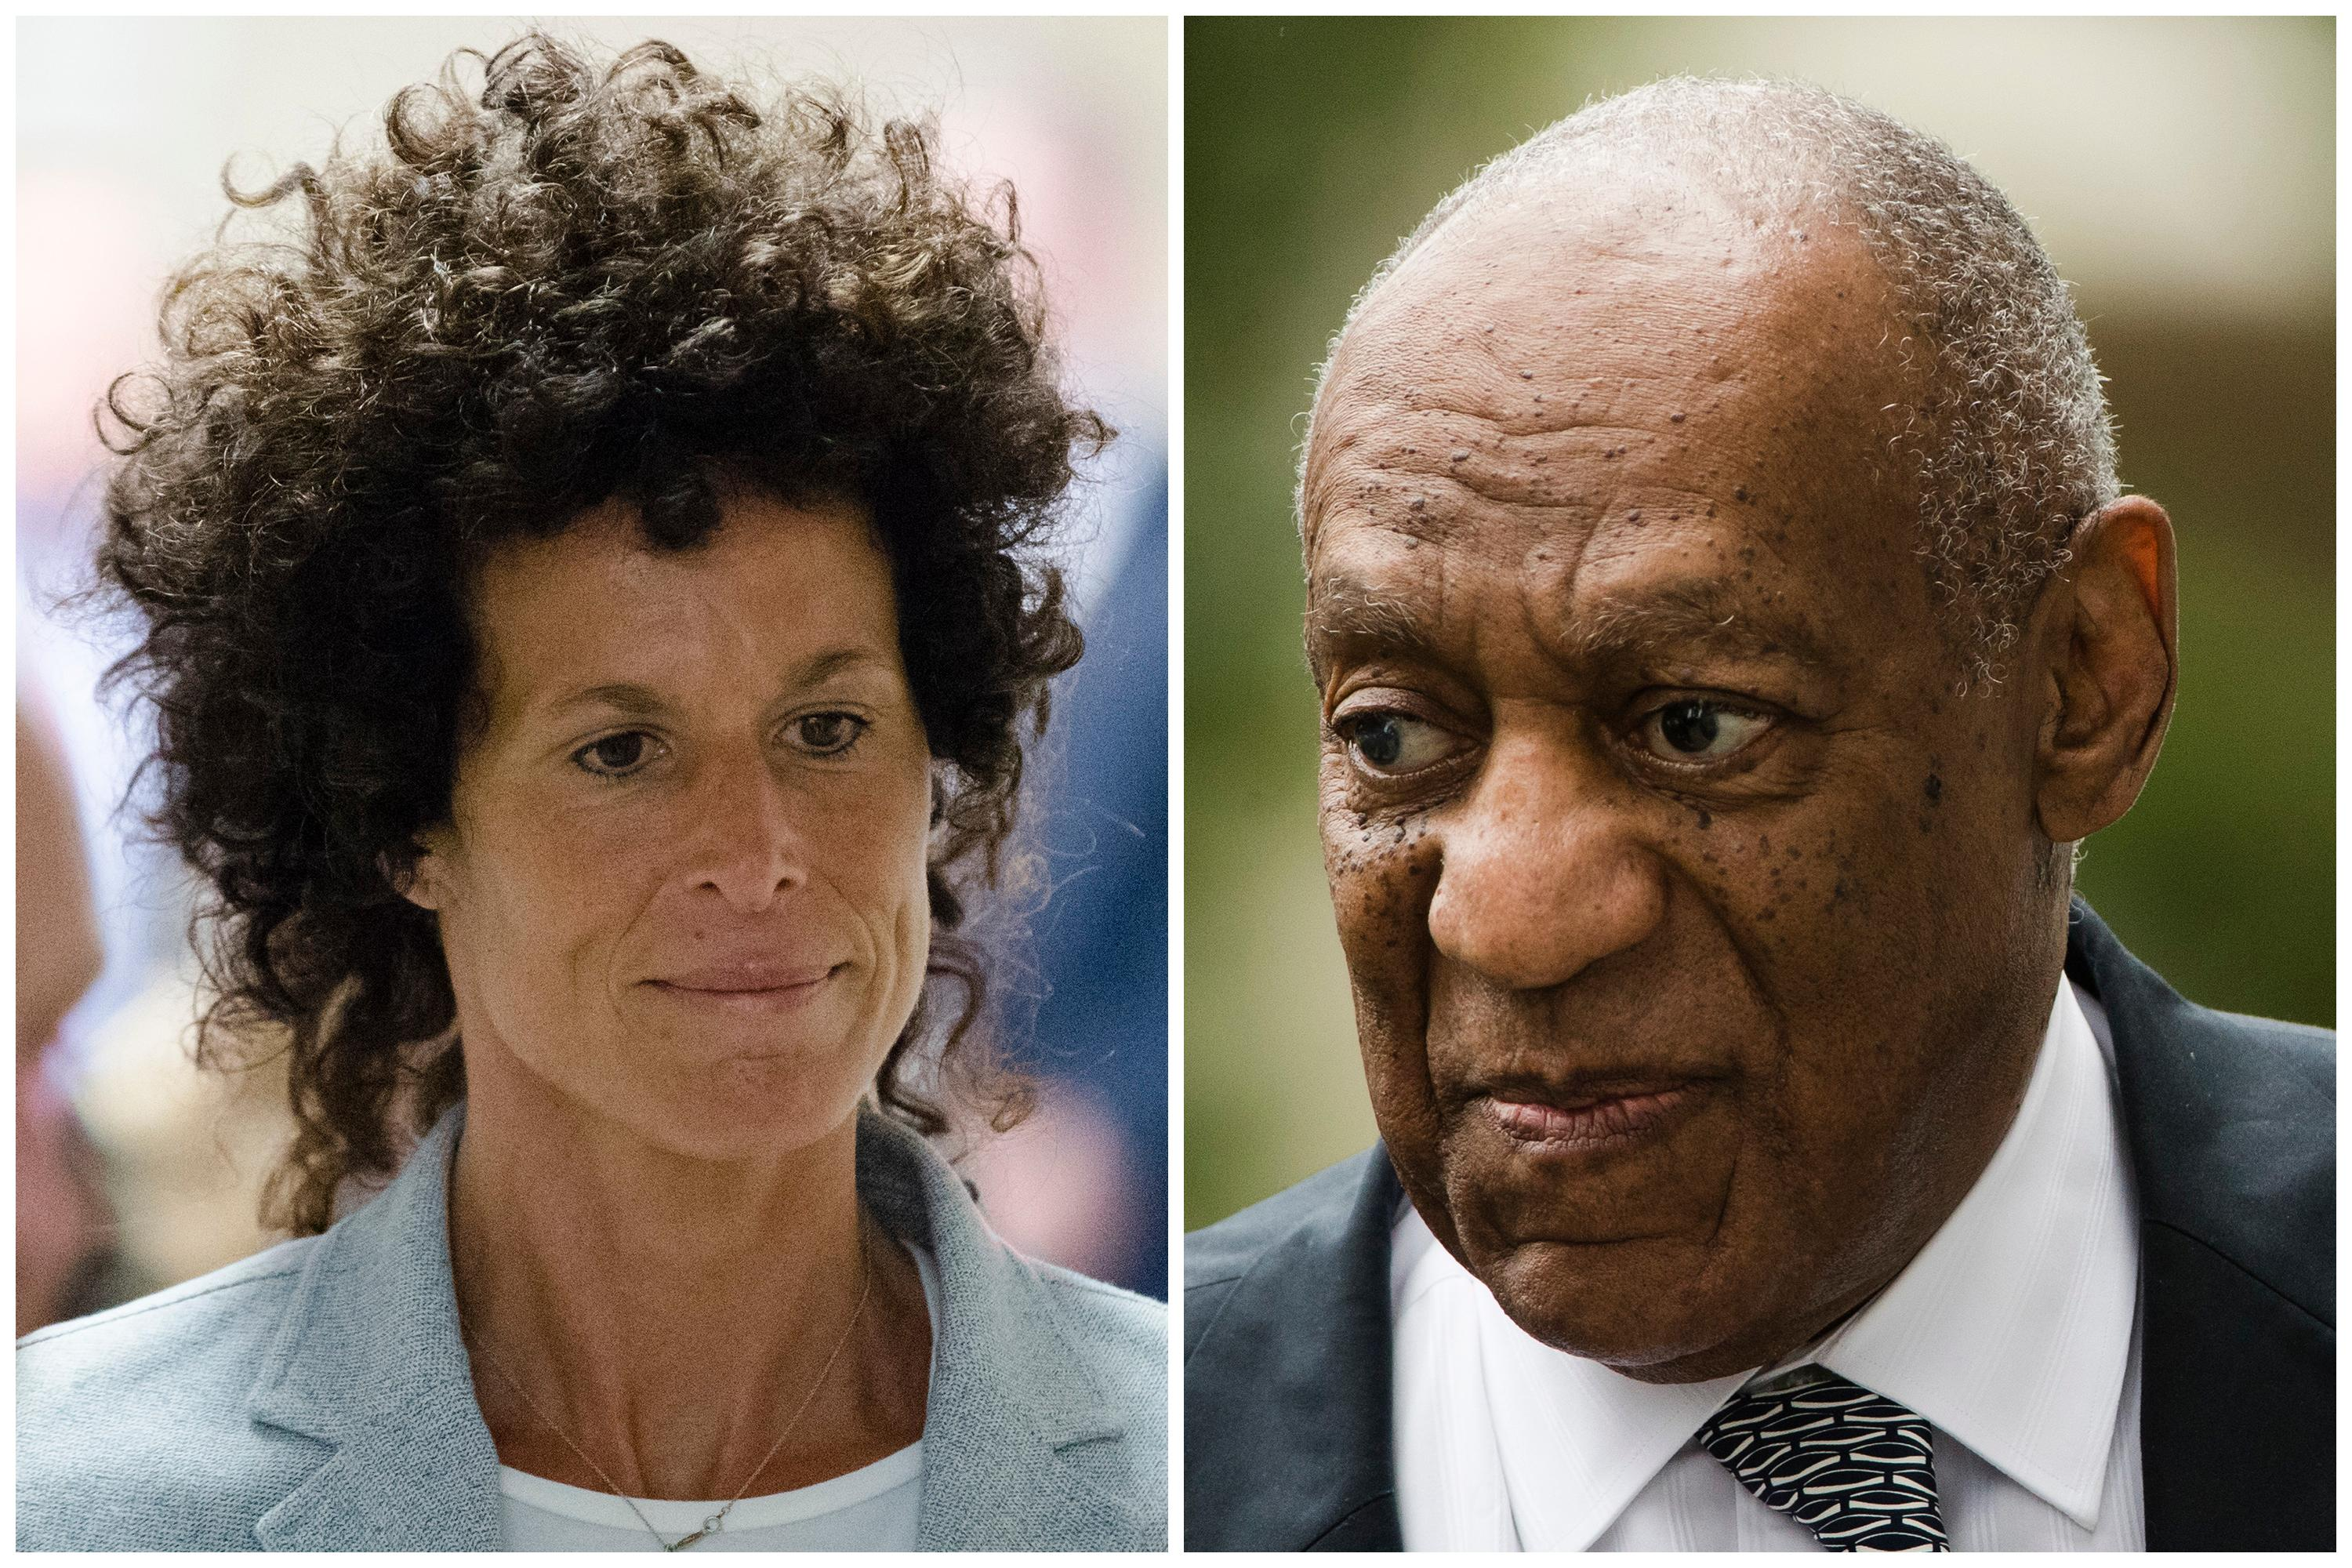 FILE - This combination of file photos shows Andrea Constand, left, walking to the courtroom during Bill Cosby's sexual assault trial June 6, 2017, at the Montgomery County Courthouse in Norristown, Pa.; and Bill Cosby, right, arriving for his sexual assault trial June 16, 2017, at the Montgomery County Courthouse in Norristown. Cosby is set to attend a Monday, March 5, 2018, pretrial hearing leading up to the entertainer's retrial on charges he drugged and sexually assaulted Constand at his home near Philadelphia. Prosecutors are seeking to call as many as 19 other accusers to the witness stand during the retrial, in an attempt to show Cosby had a five-decade pattern of drugging and harming women. (AP Photo/Matt Rourke, File)